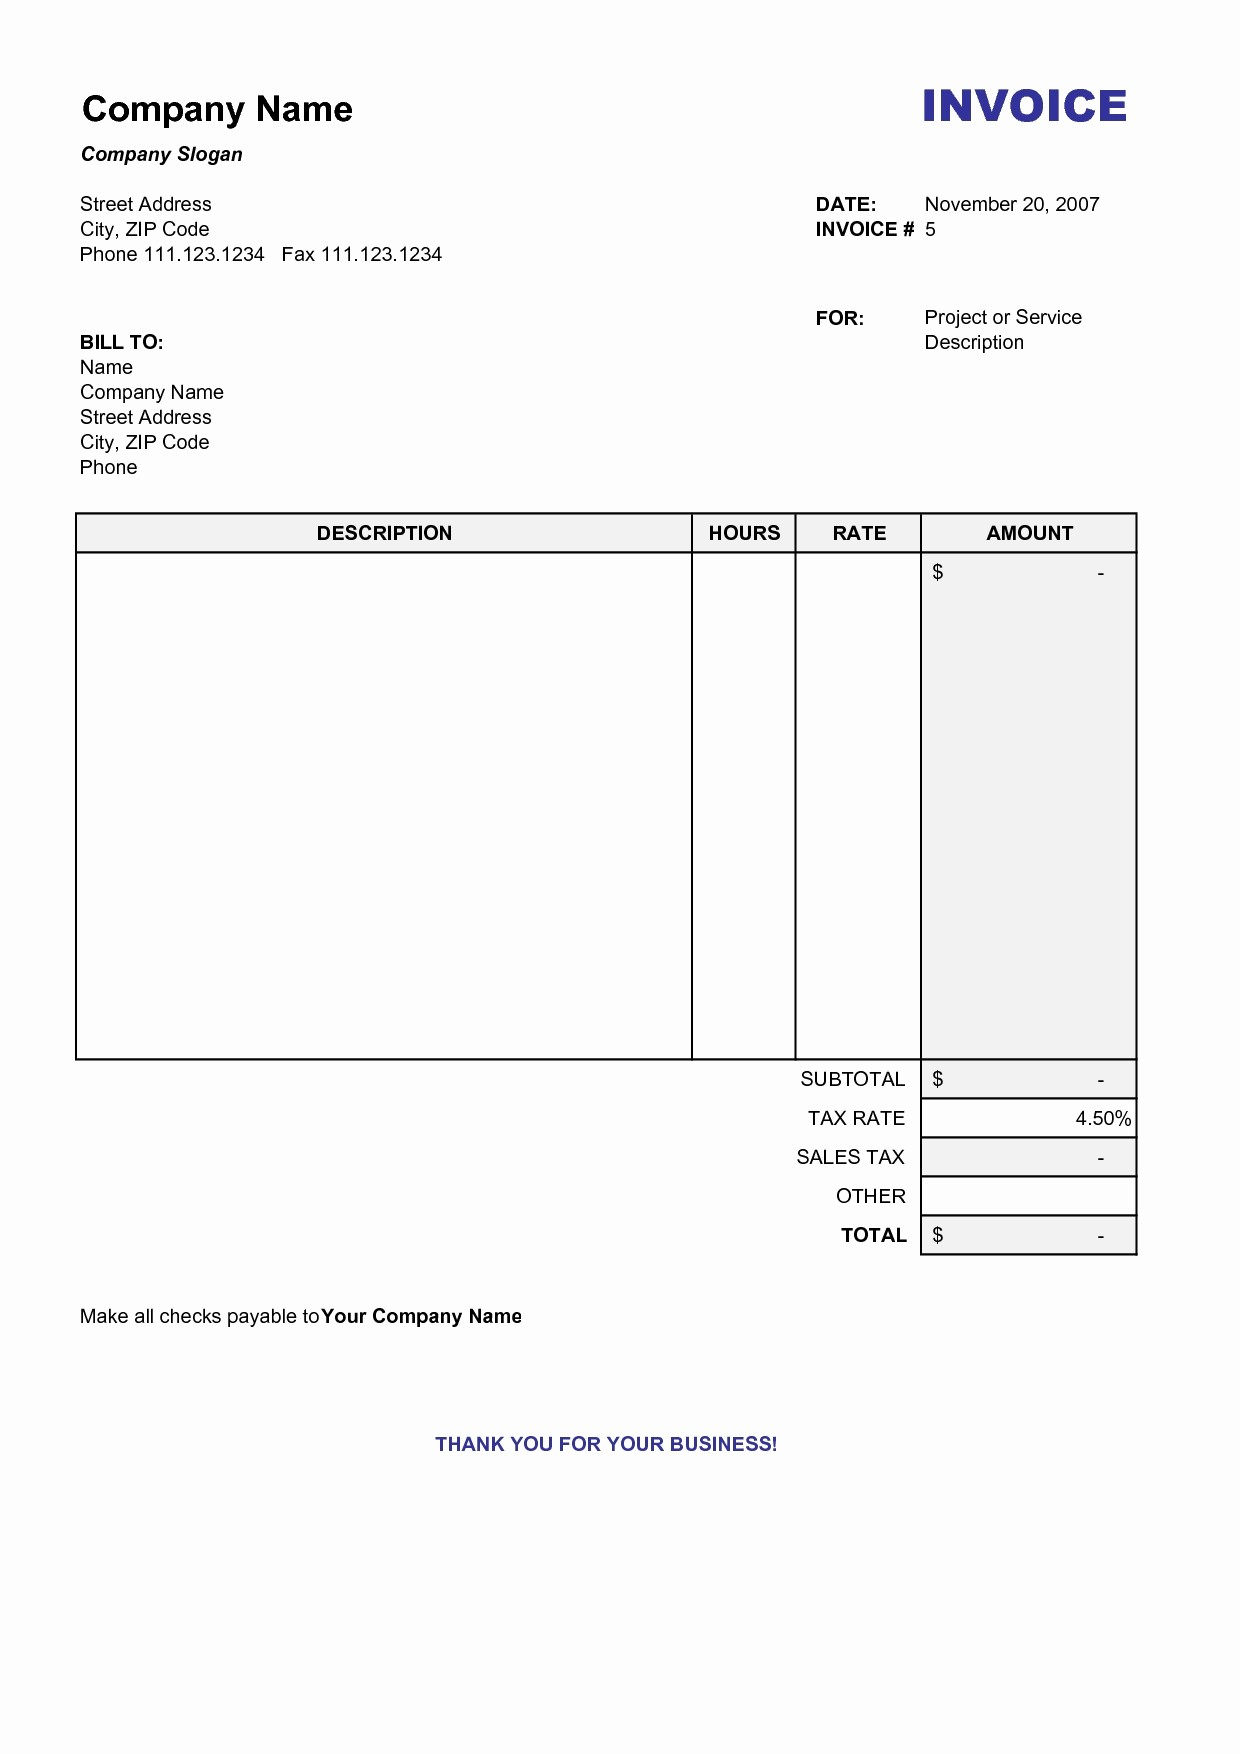 Free Printable Invoice Templates Word Fresh Free Printable Invoice Template Word Invoice Template Ideas